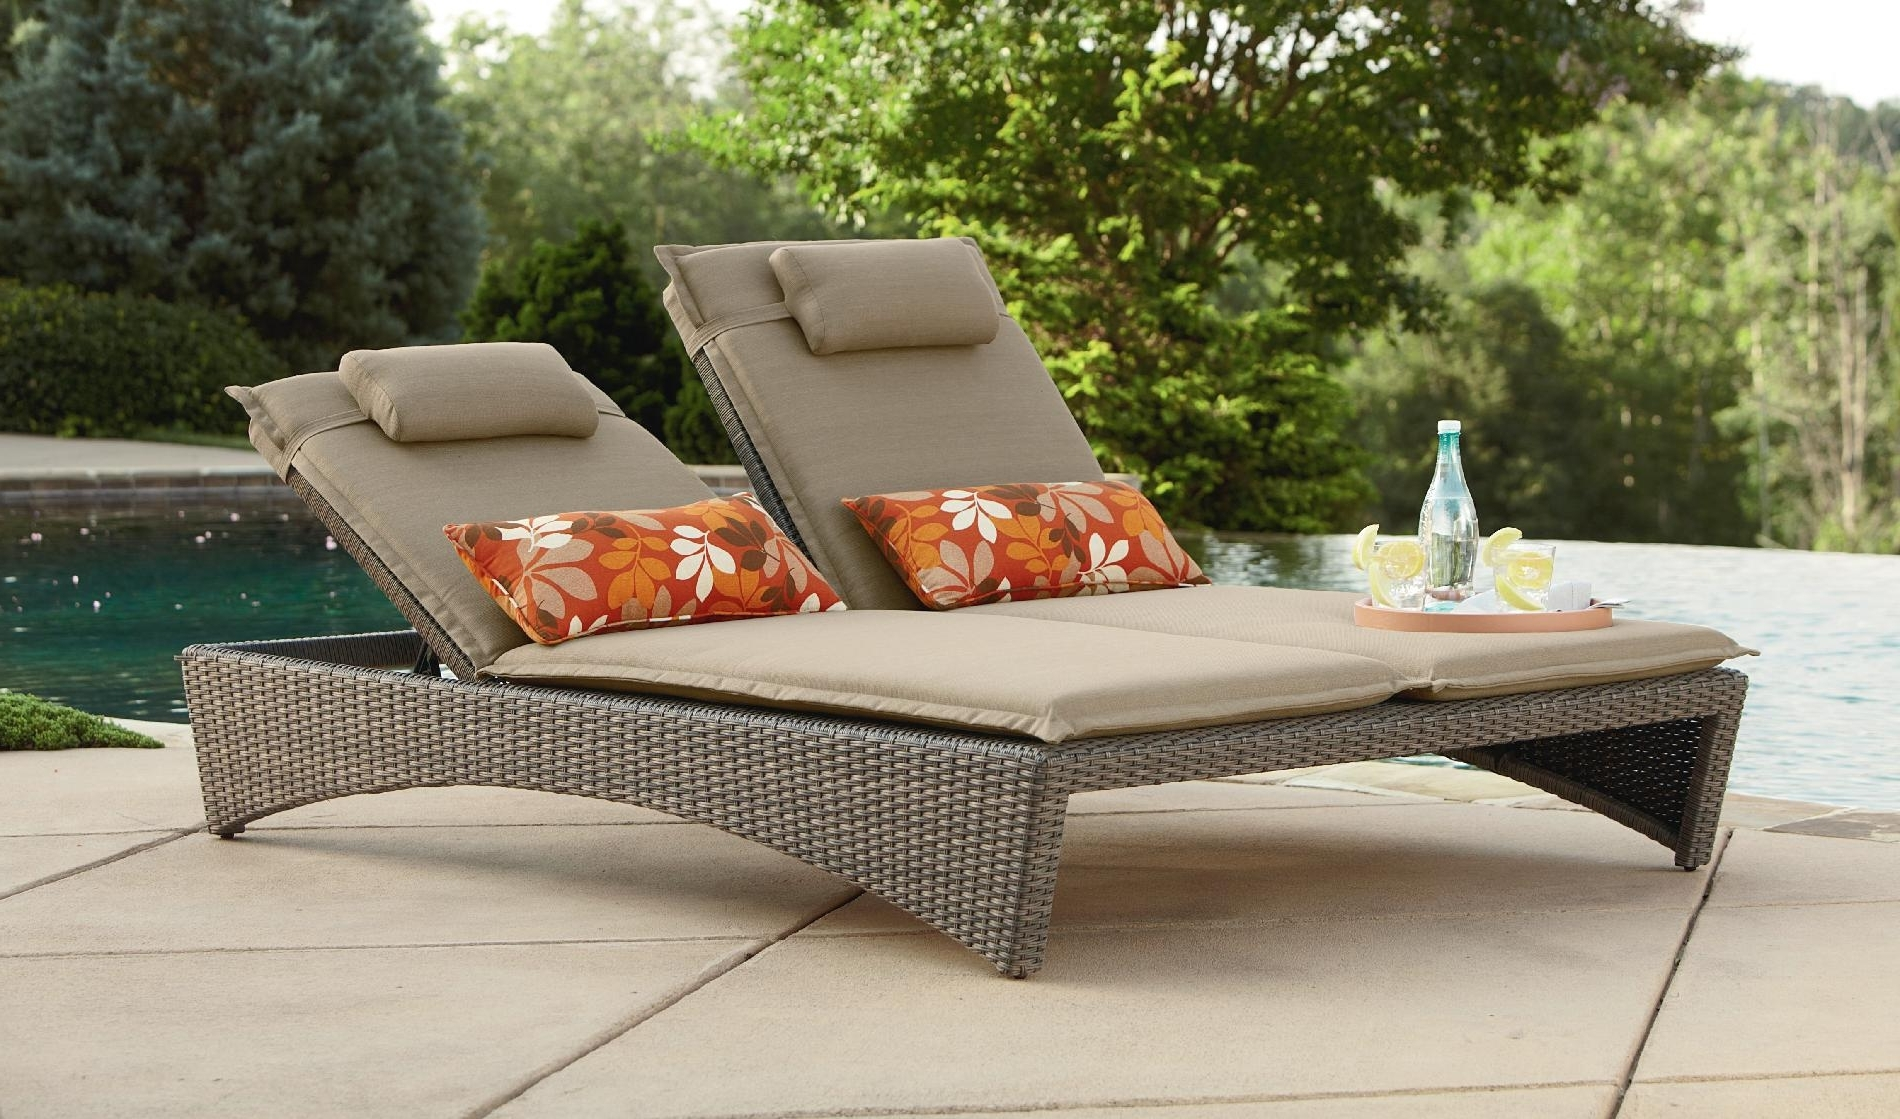 Popular Dual Chaise Lounge Chairs With Regard To Picture 3 Of 35 – Walmart Patio Lounge Chairs Luxury Patio (View 11 of 15)